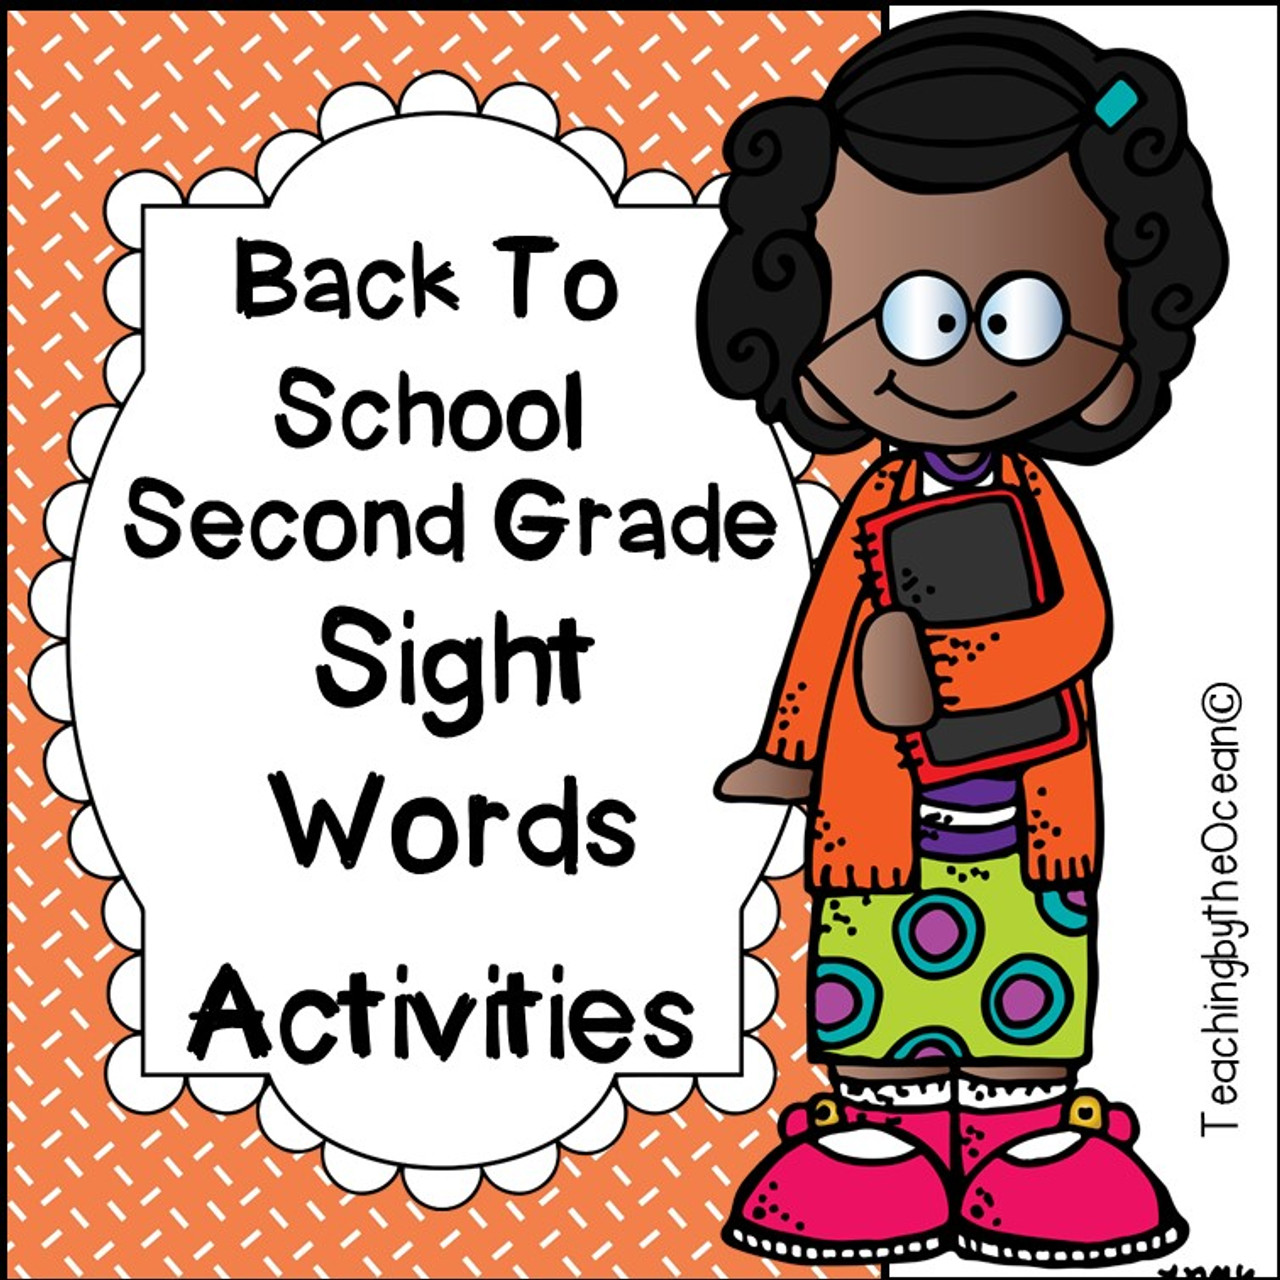 small resolution of Second Grade Sight Words Worksheets - Back to School Themed - Amped Up  Learning